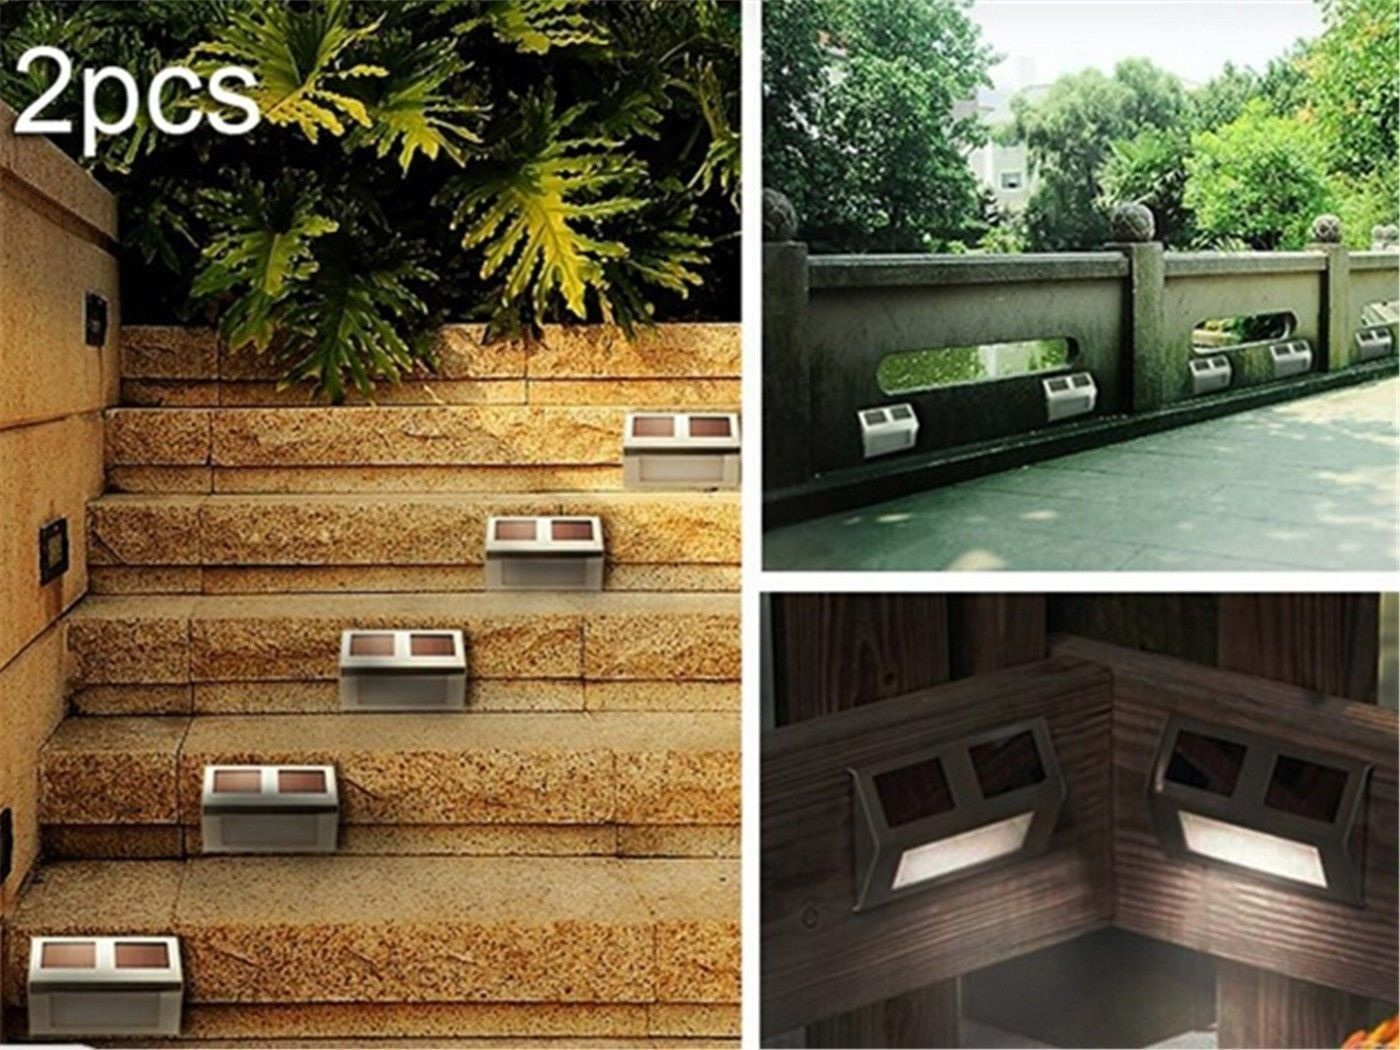 2Pcs Solar LED Step Door Fence Wall Outdoor Garden Lighting Lamp Lights